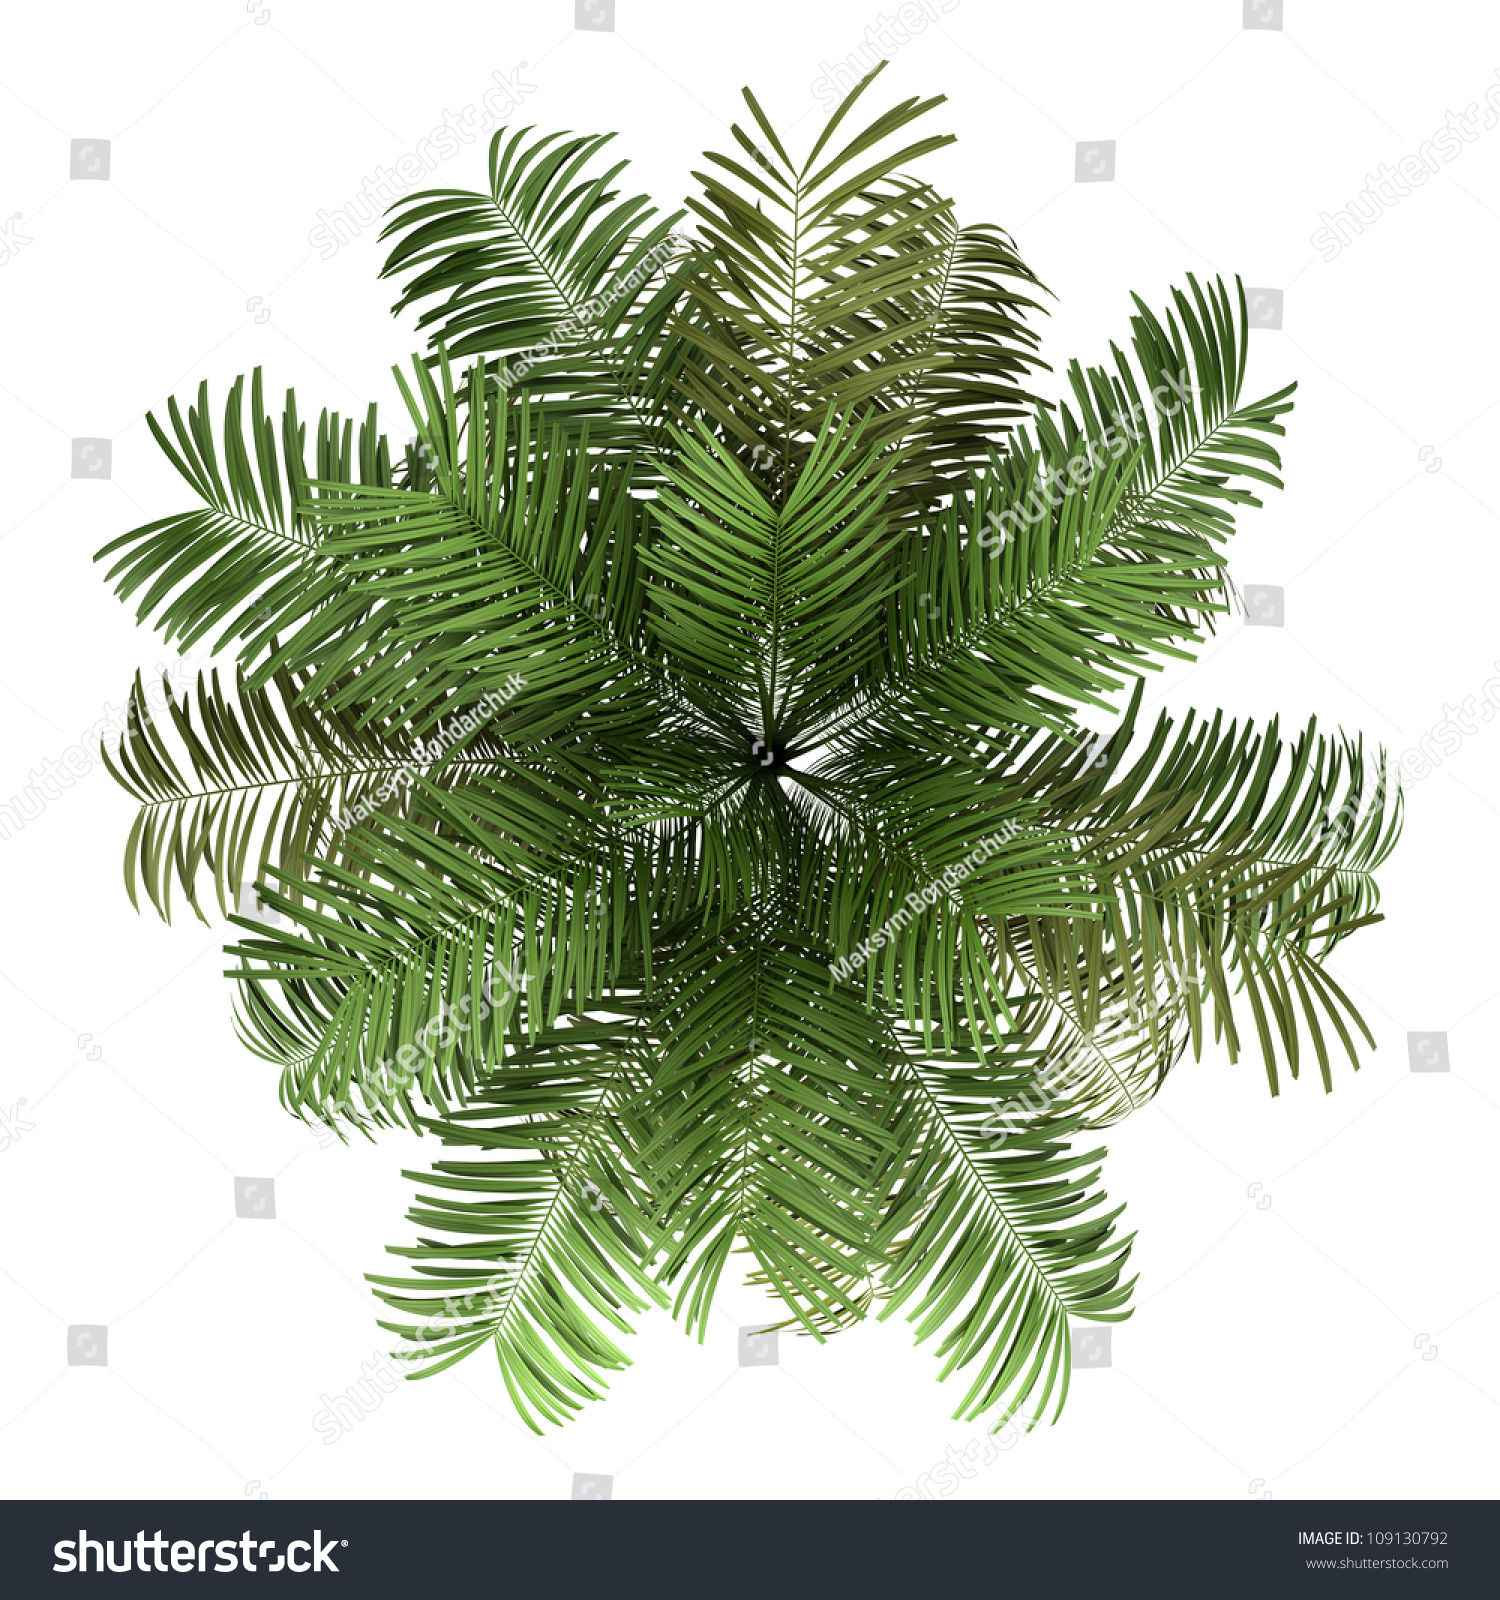 Top View Areca Palm Tree Isolated Stock Illustration 109130792 ... for Palm Tree Top View Png  61obs